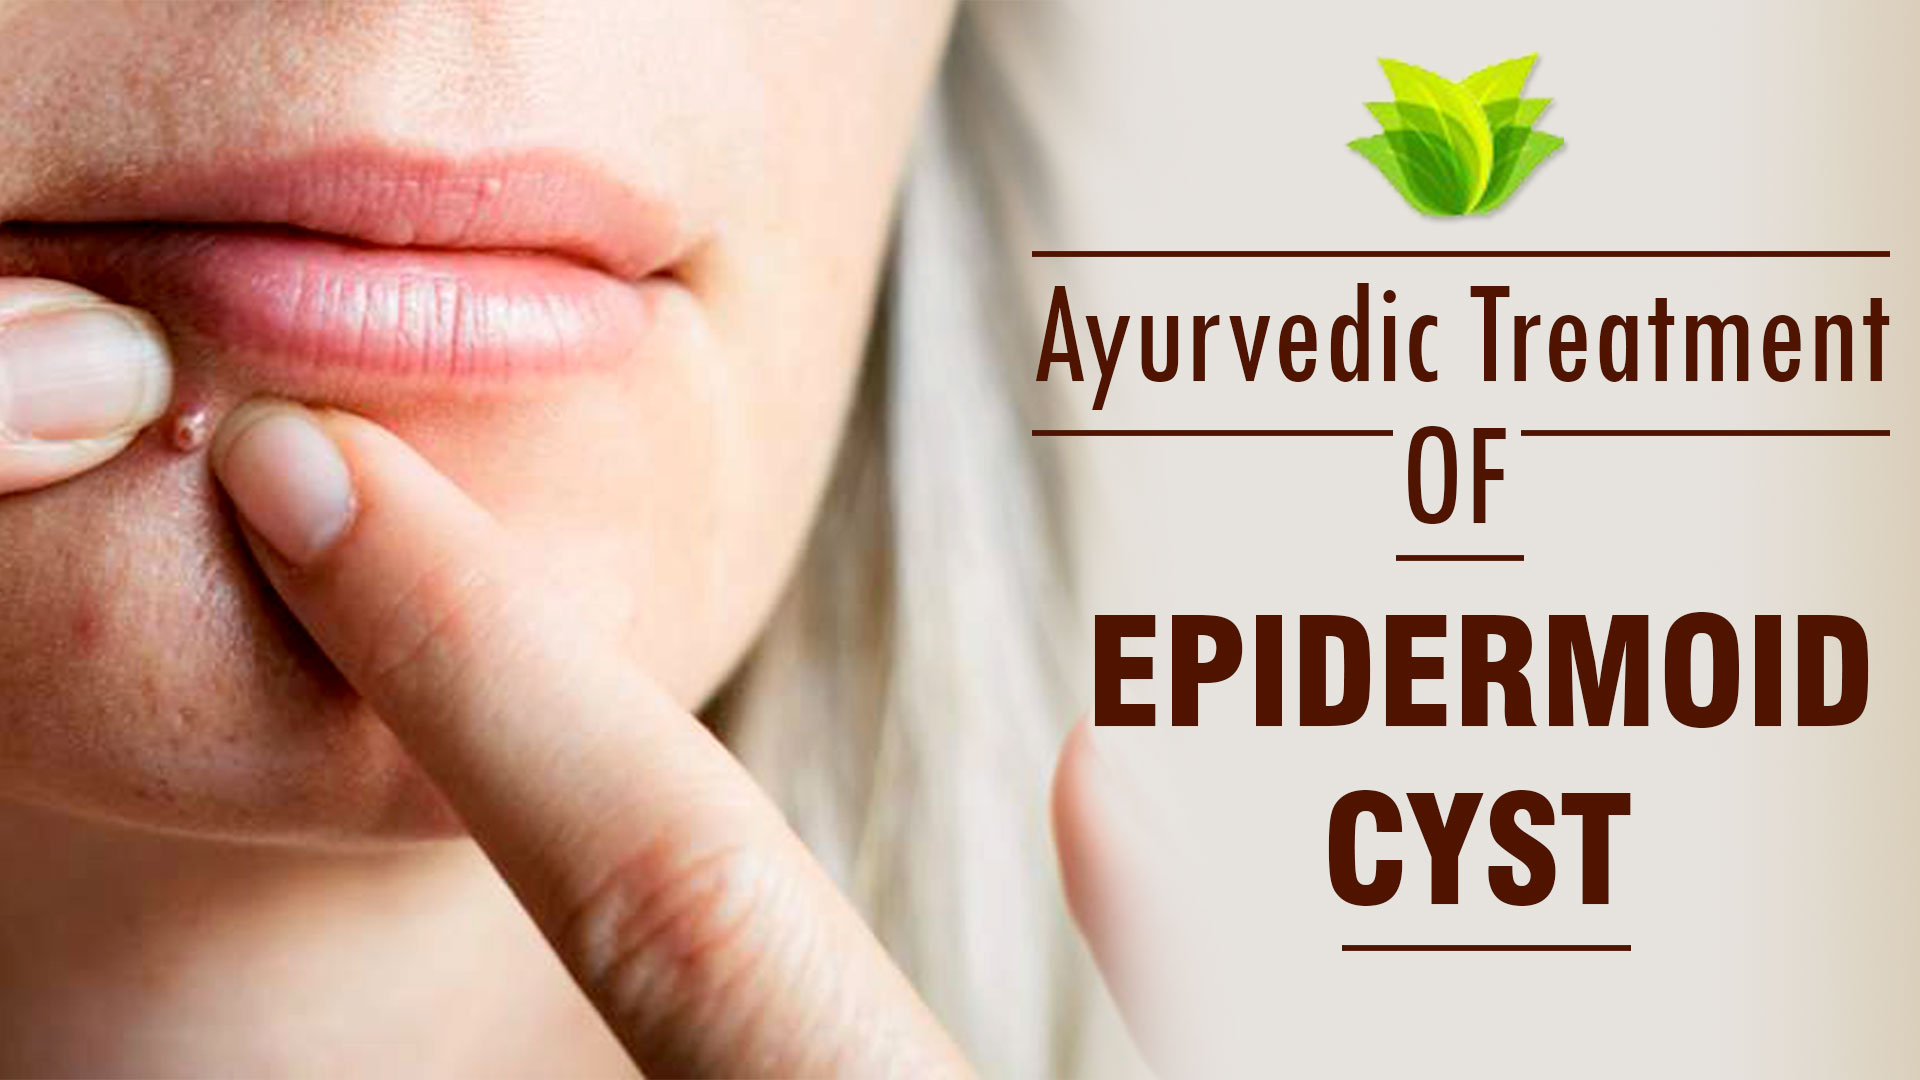 Ayurvedic Treatment for Epidermoid Cysts - Causes, Symptoms, Diagnosis & Herbal Remedies